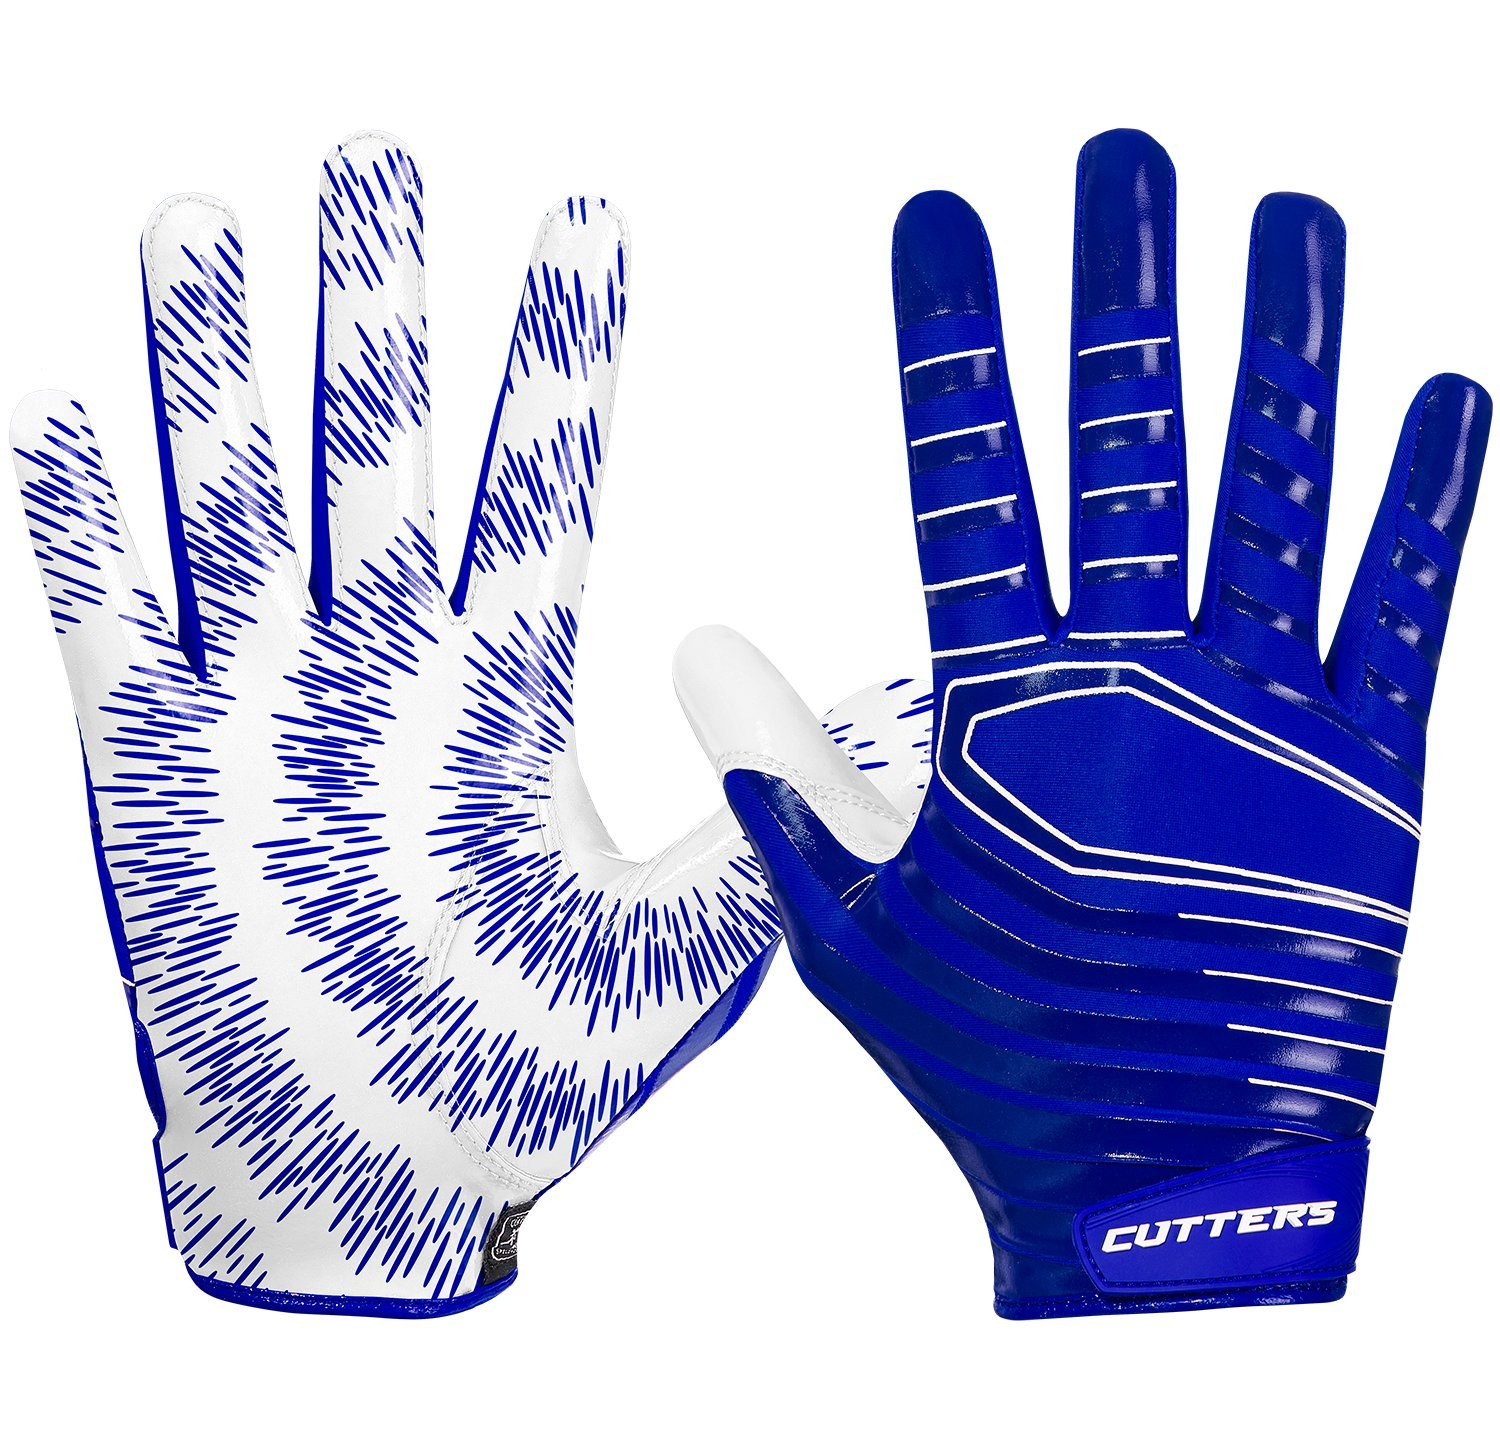 Cutters Gloves Rev 3.0 Receiver Gloves, Royal, Small by Cutters (Image #2)